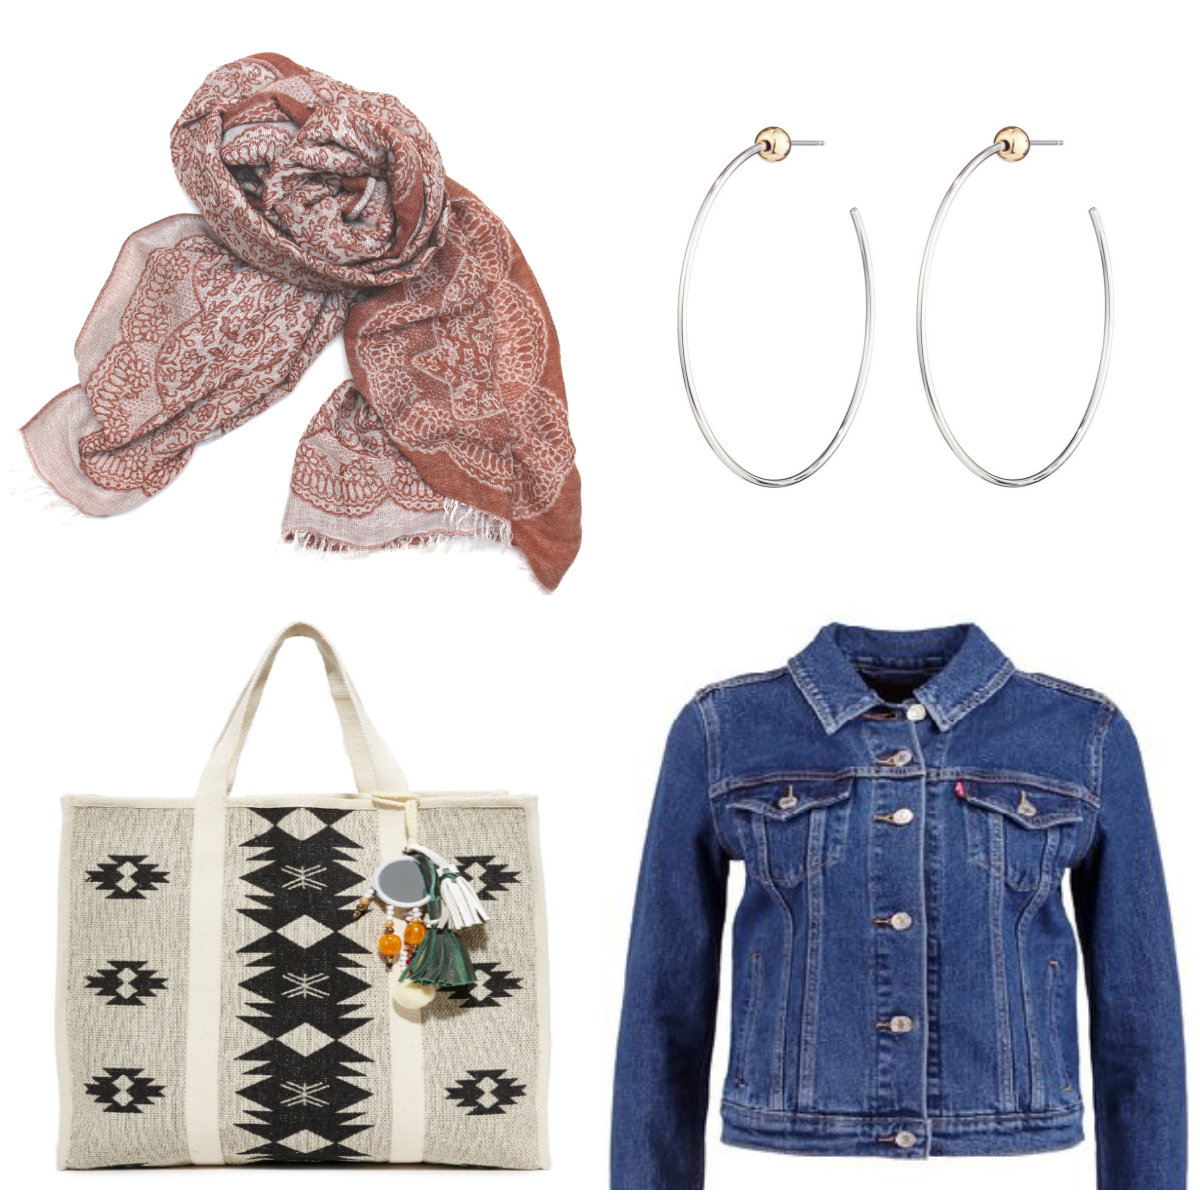 Jackson Rowe Scarf $60 Jenny Bird Icon Hoops $65 Star Mela Tote Bag $195 Levi's Authentic Denim Jacket $108